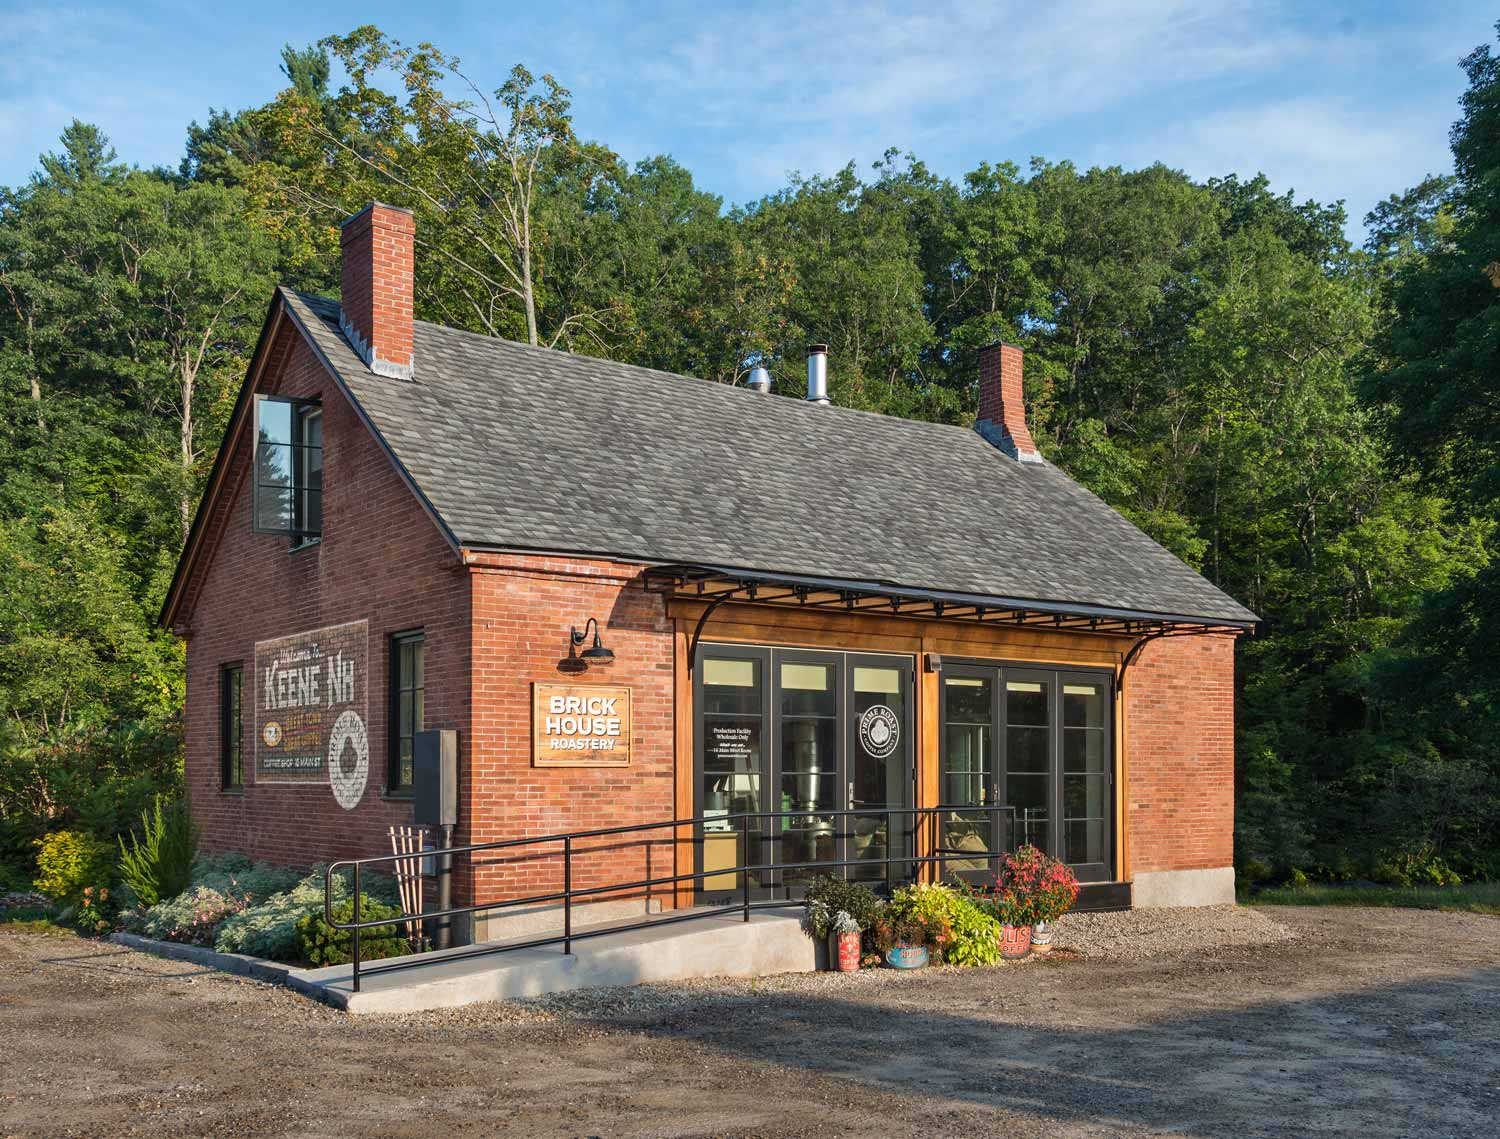 The Brick House Roastery in Keene New Hampshire